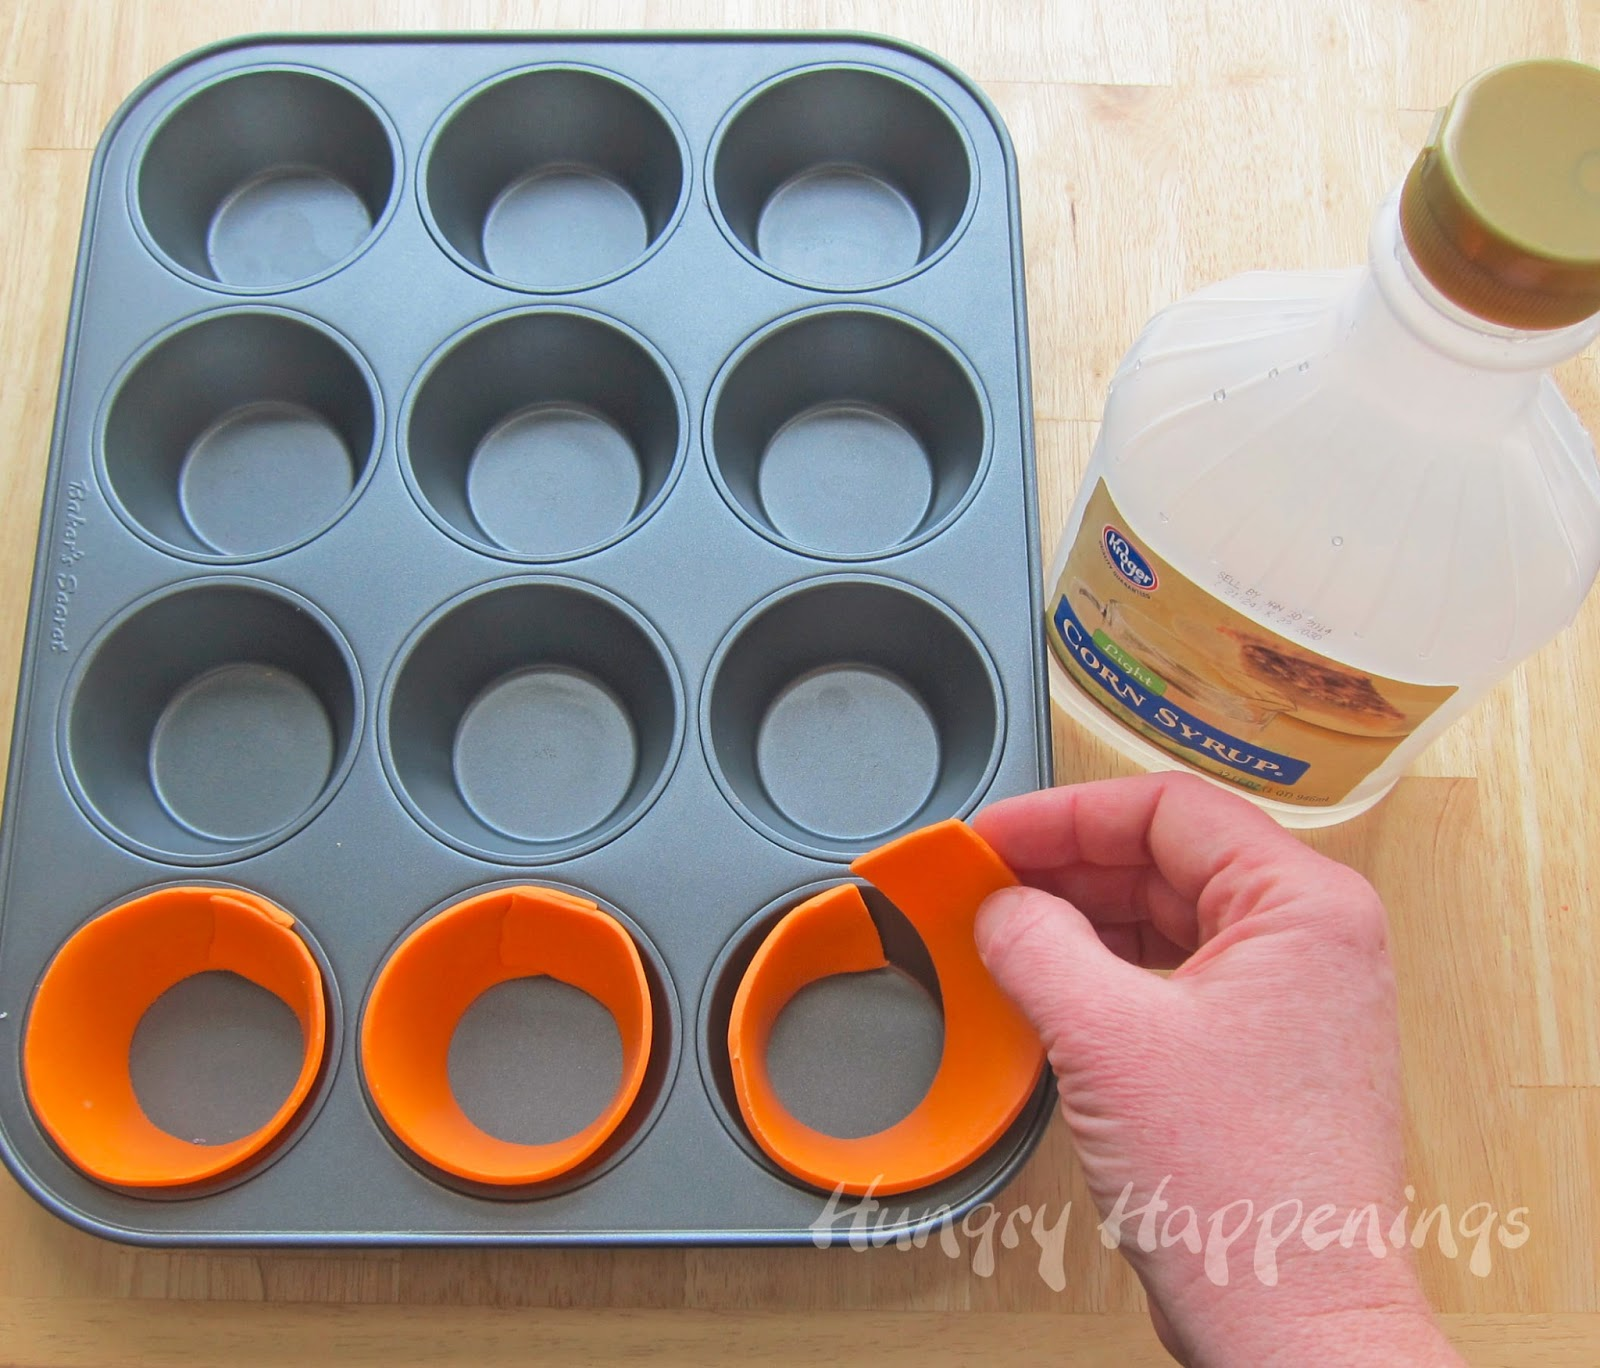 How to make edible cupcake wrappers to make Carrot Top Cupcakes